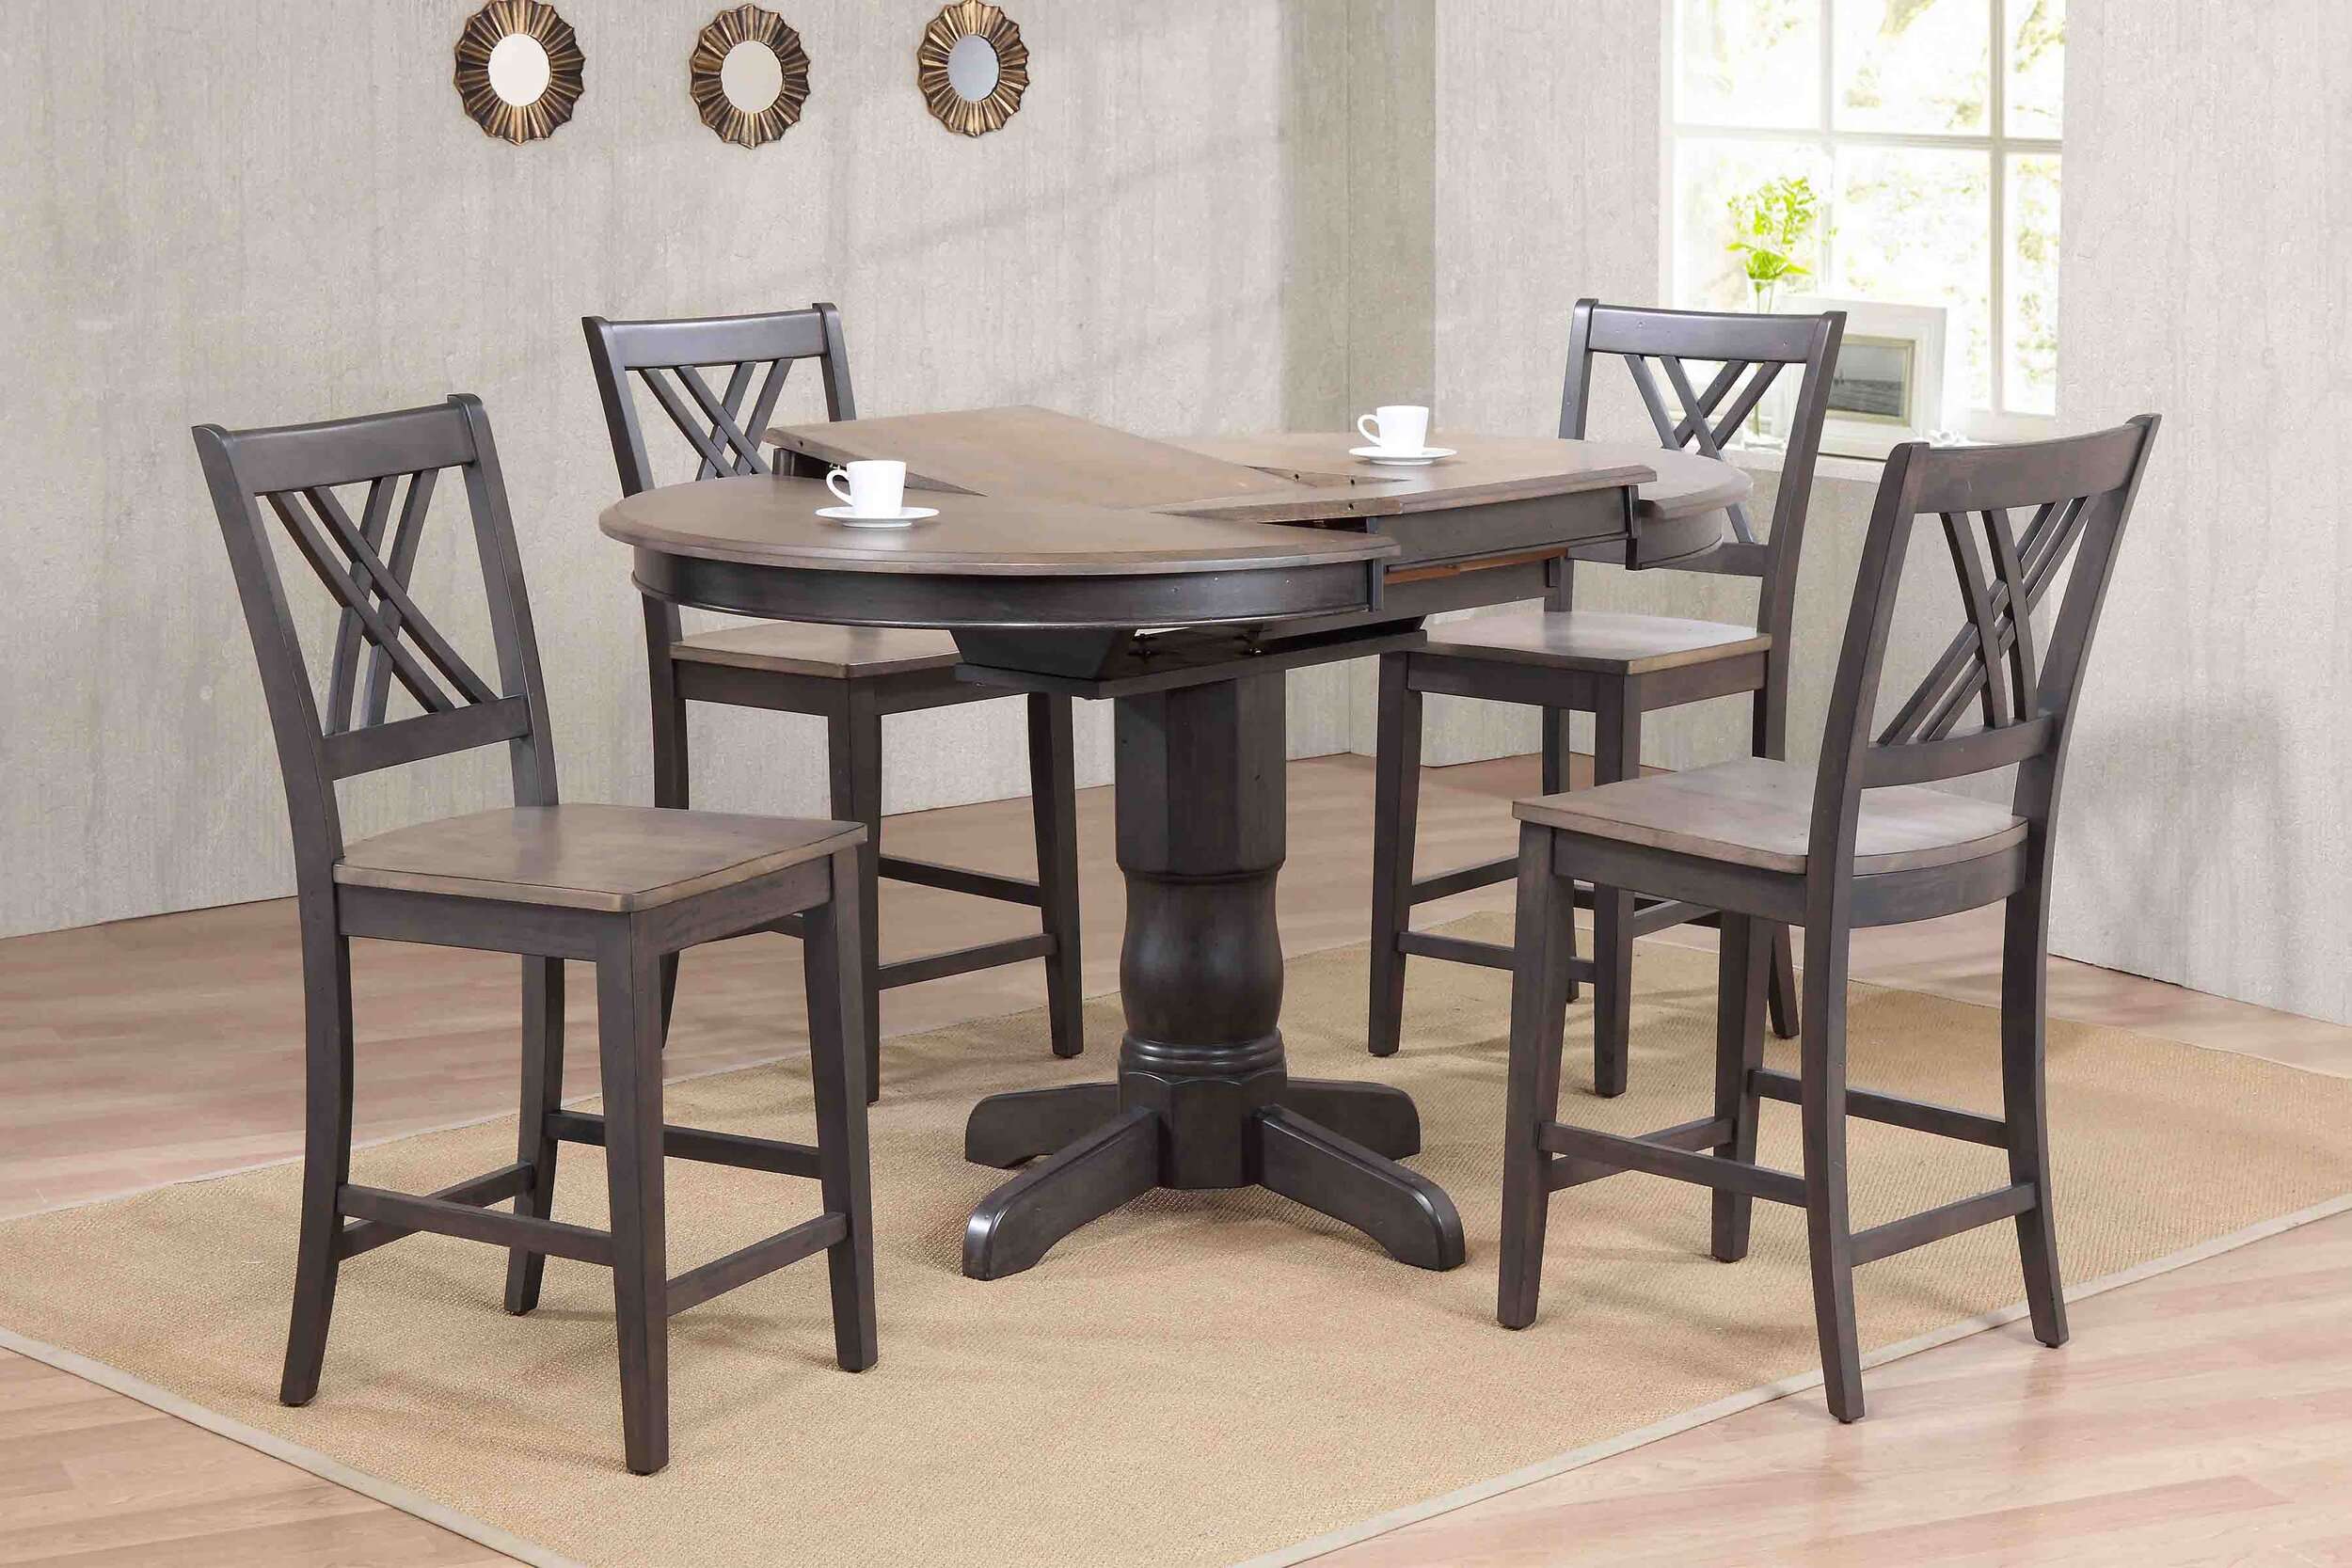 Antiqued Grey Stone Black Stone Double X- Back Counter Height (5-Piece Dining Set)